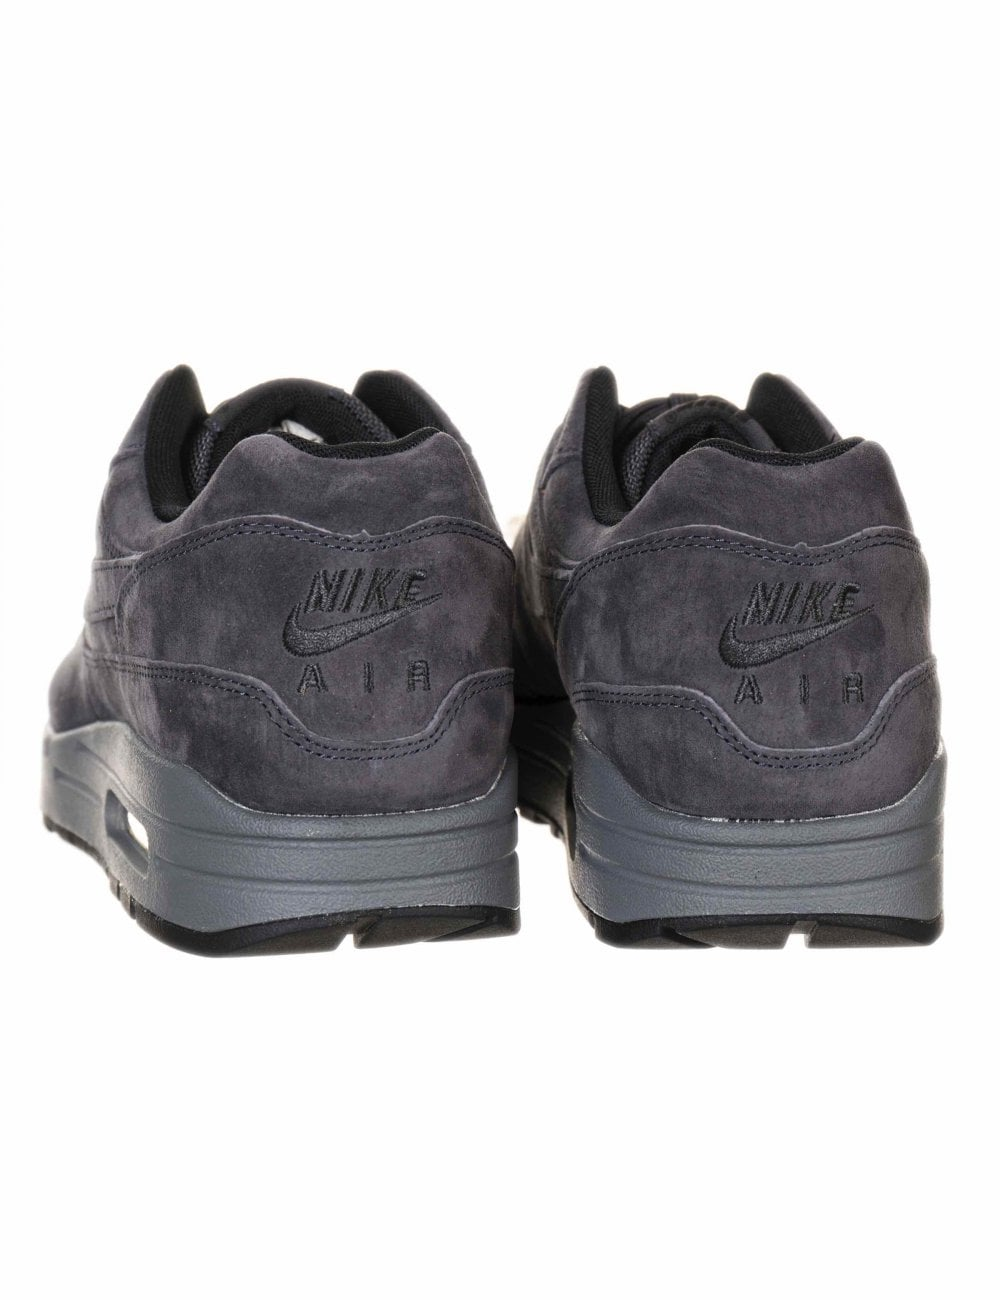 c36576f25b0d Nike Air Max 1 Trainers - Anthracite Black - Footwear from Fat ...